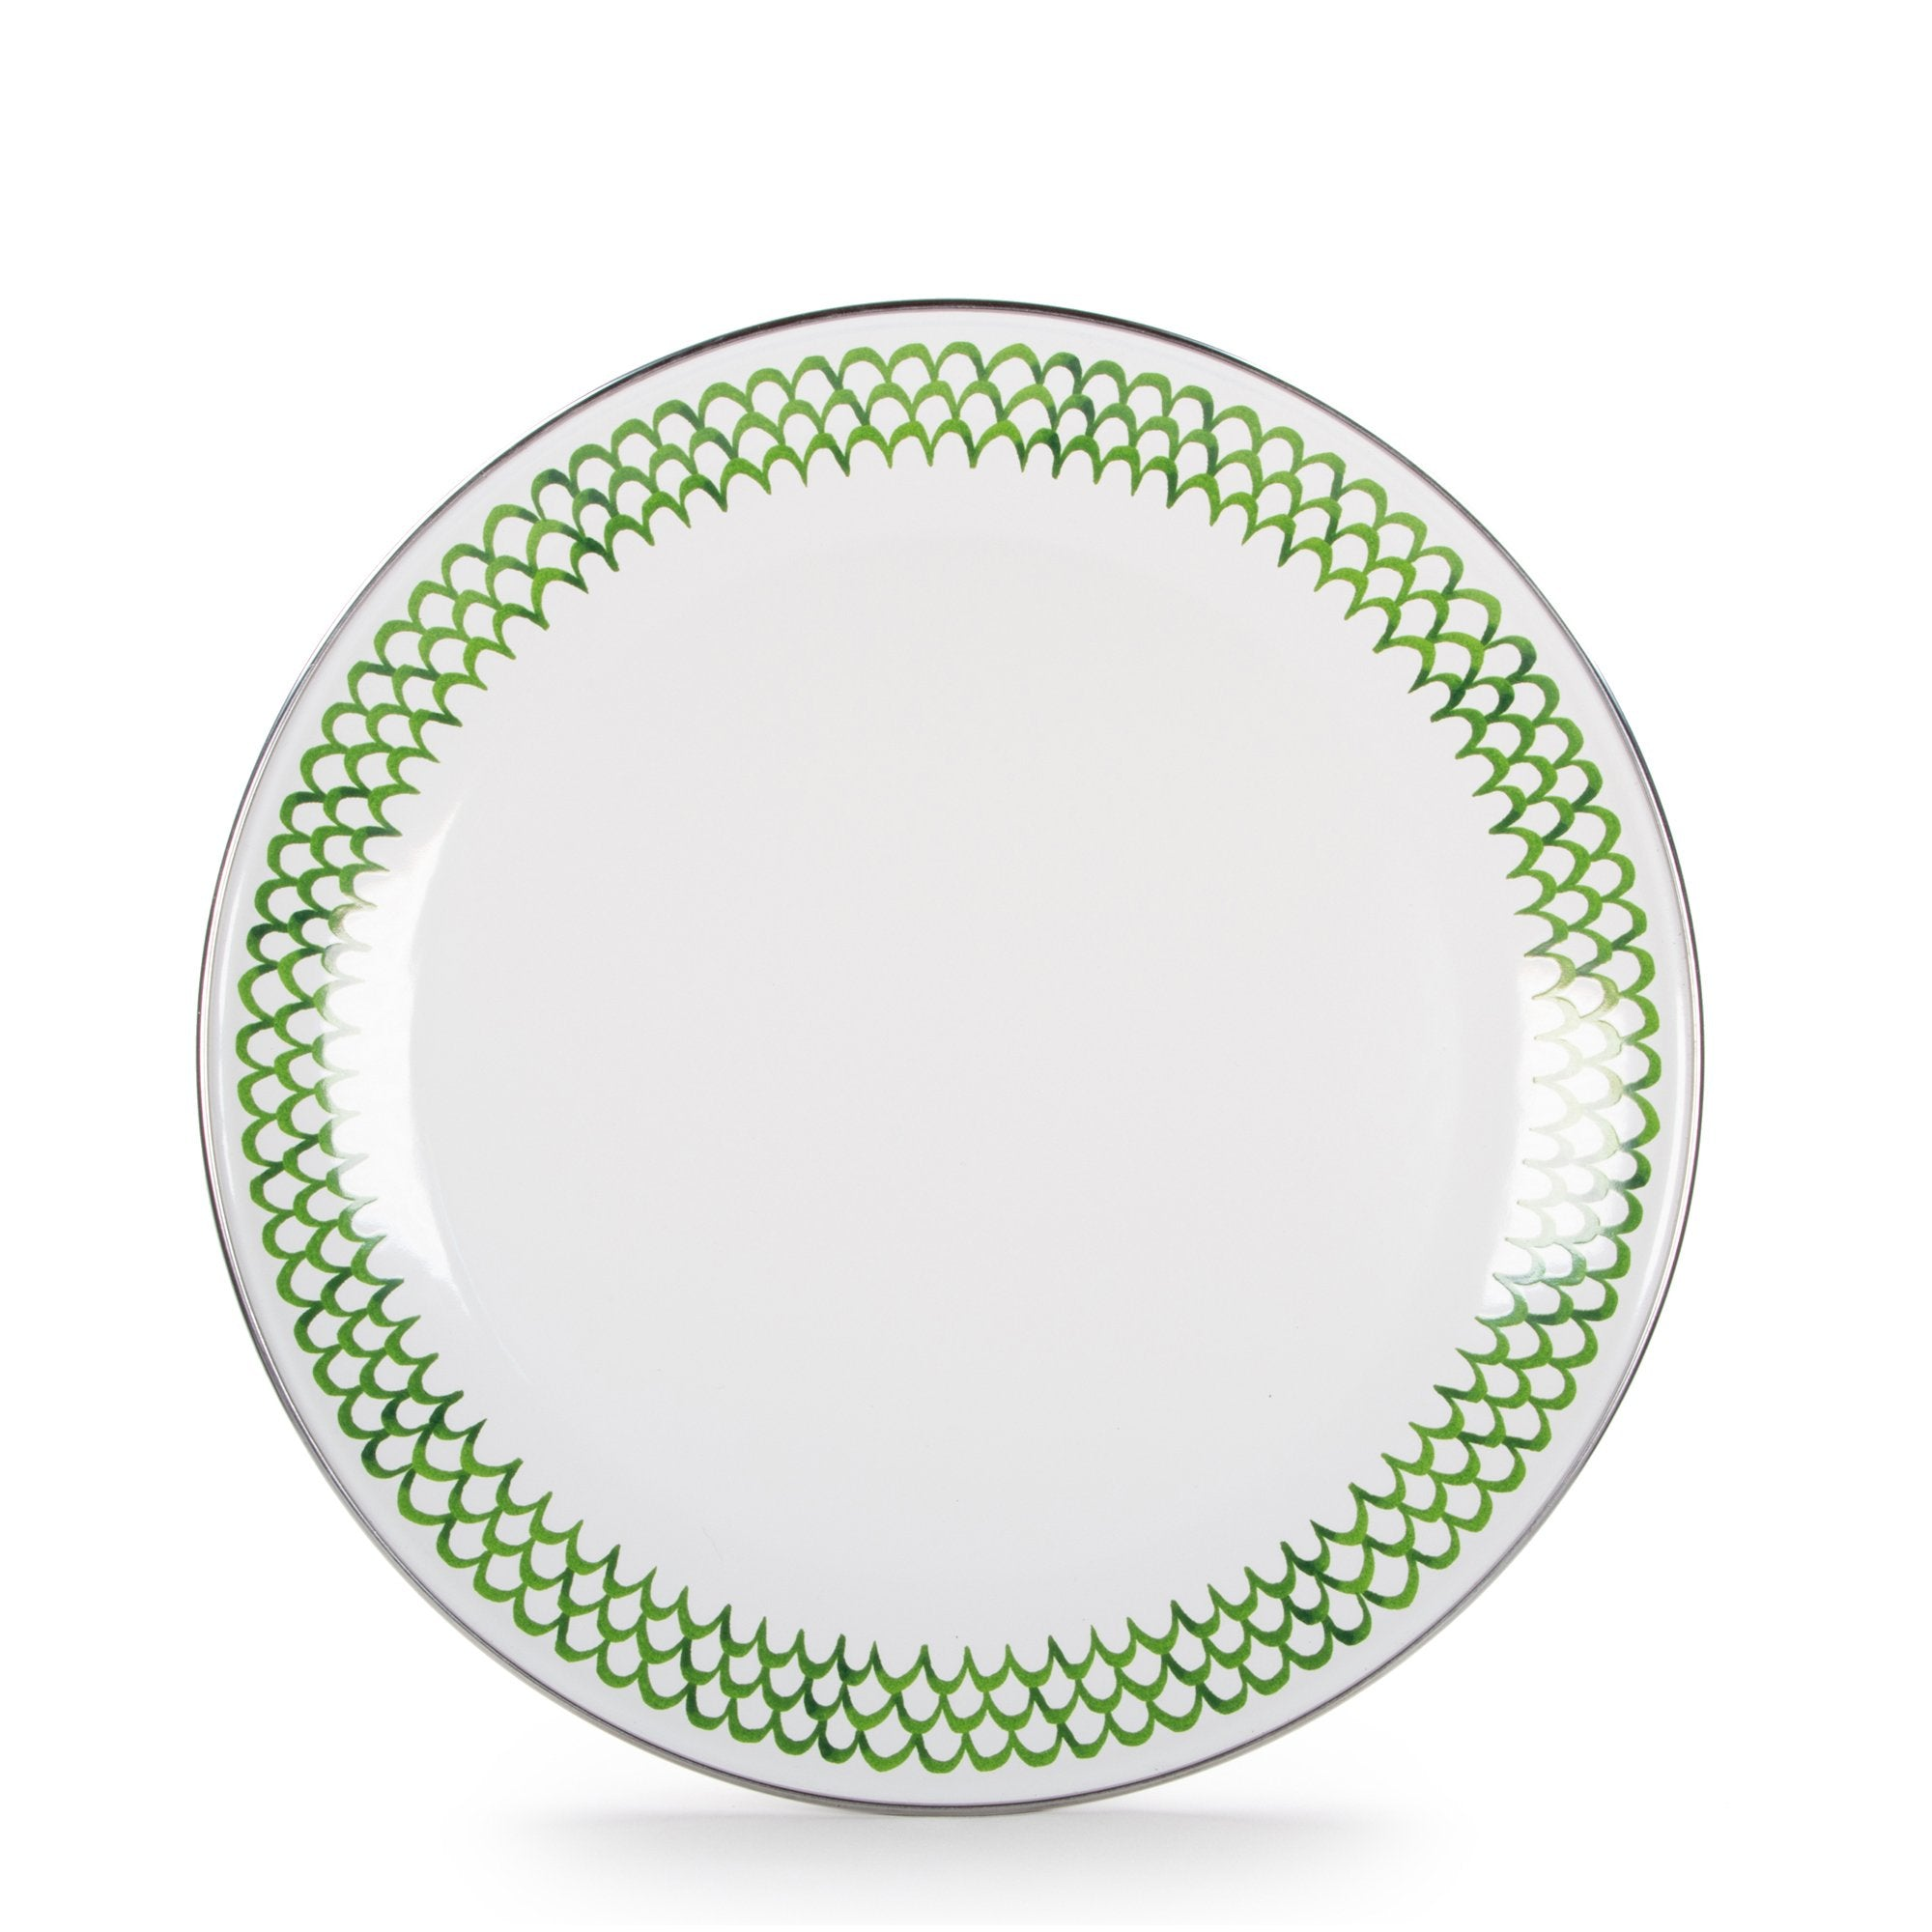 GS56 - Green Scallop Pattern - Dinner Plate